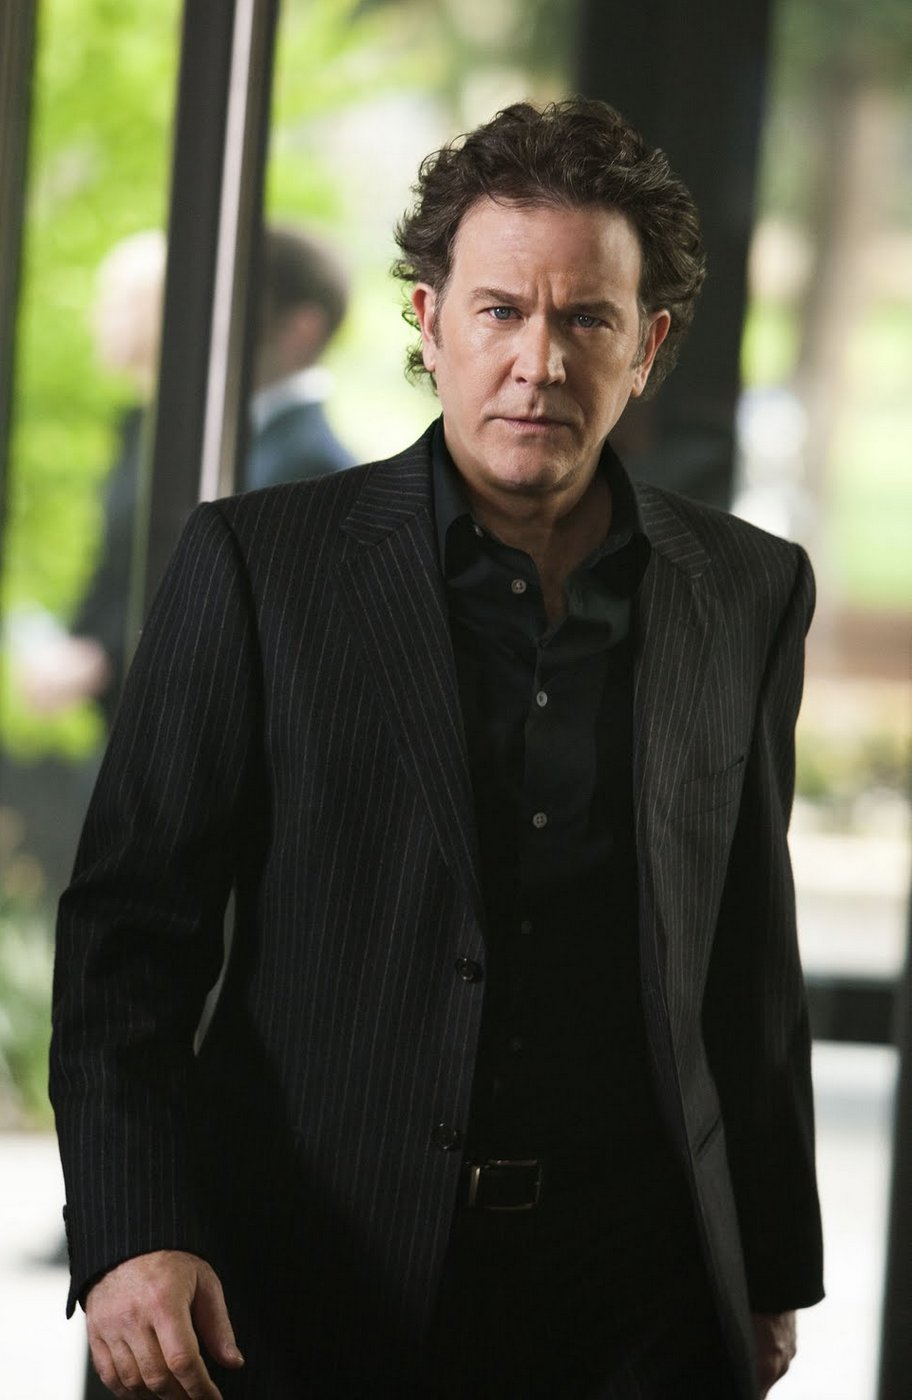 timothy hutton wikitimothy hutton oscar, timothy hutton debra winger, timothy hutton height, timothy hutton, timothy hutton imdb, timothy hutton movies, timothy hutton net worth, timothy hutton wiki, timothy hutton actor, timothy hutton young, timothy hutton leverage, timothy hutton wikipedia, felicity huffman and timothy hutton, timothy hutton films, timothy hatton architects, timothy hutton movies and tv shows, timothy hutton father, timothy hutton wife, timothy hutton american crime, timothy hutton and angelina jolie